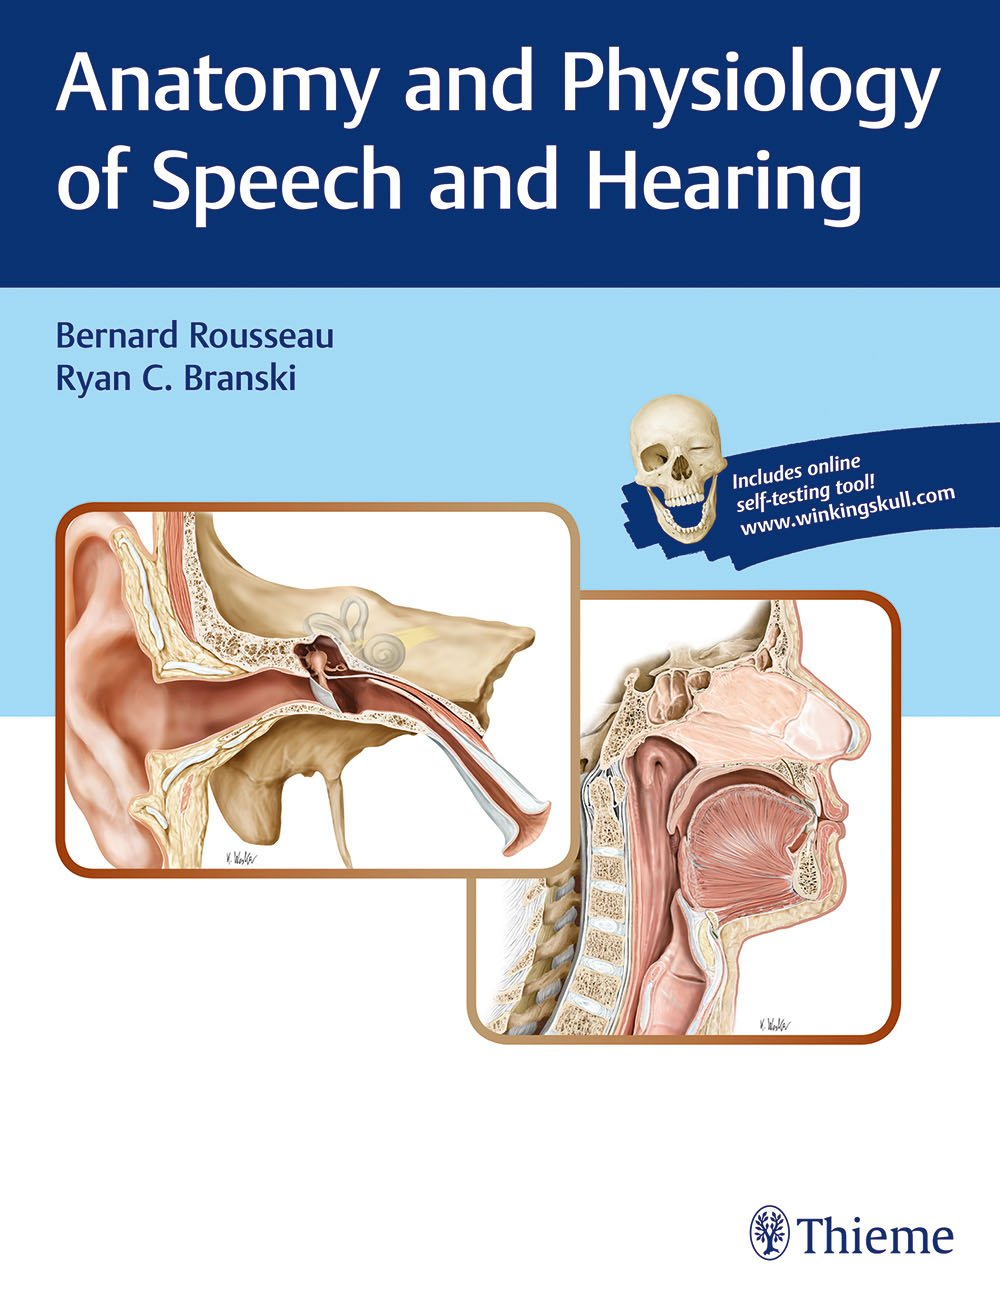 Anatomy and Physiology of Speech and Hearing: Amazon.co.uk: Bernard ...